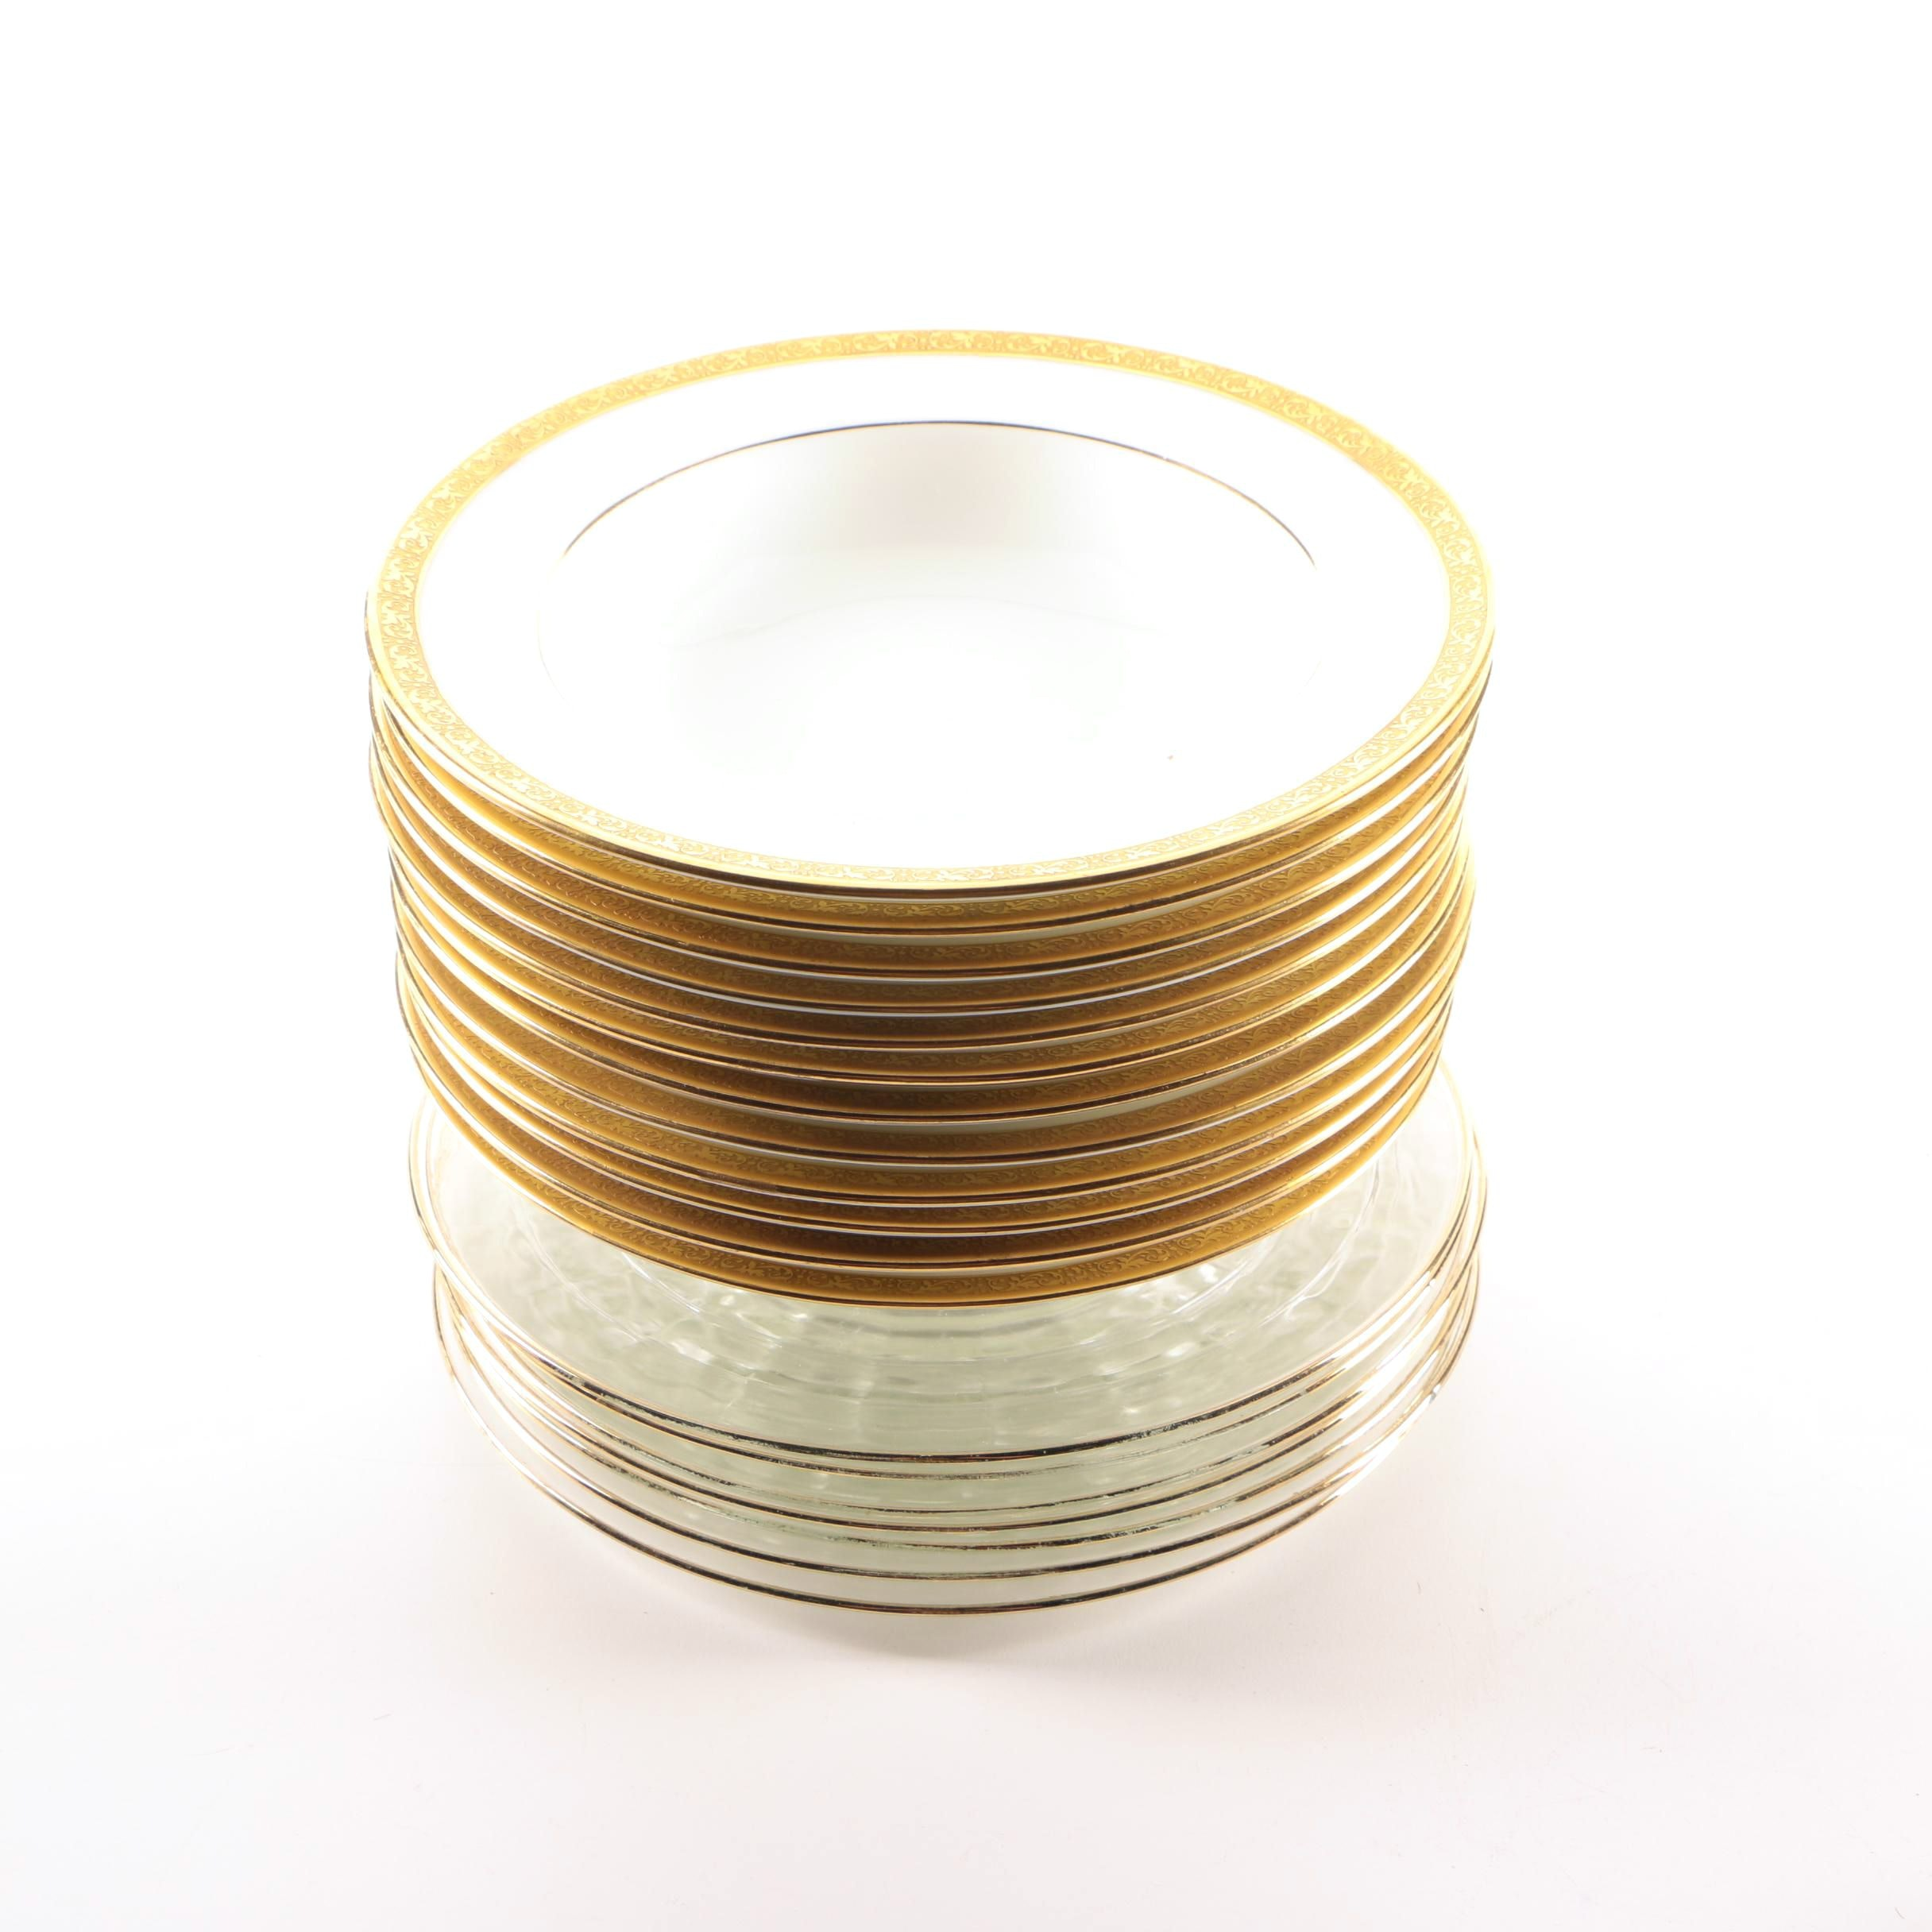 Gold Accented Porcelain Bowls and Glass Plates